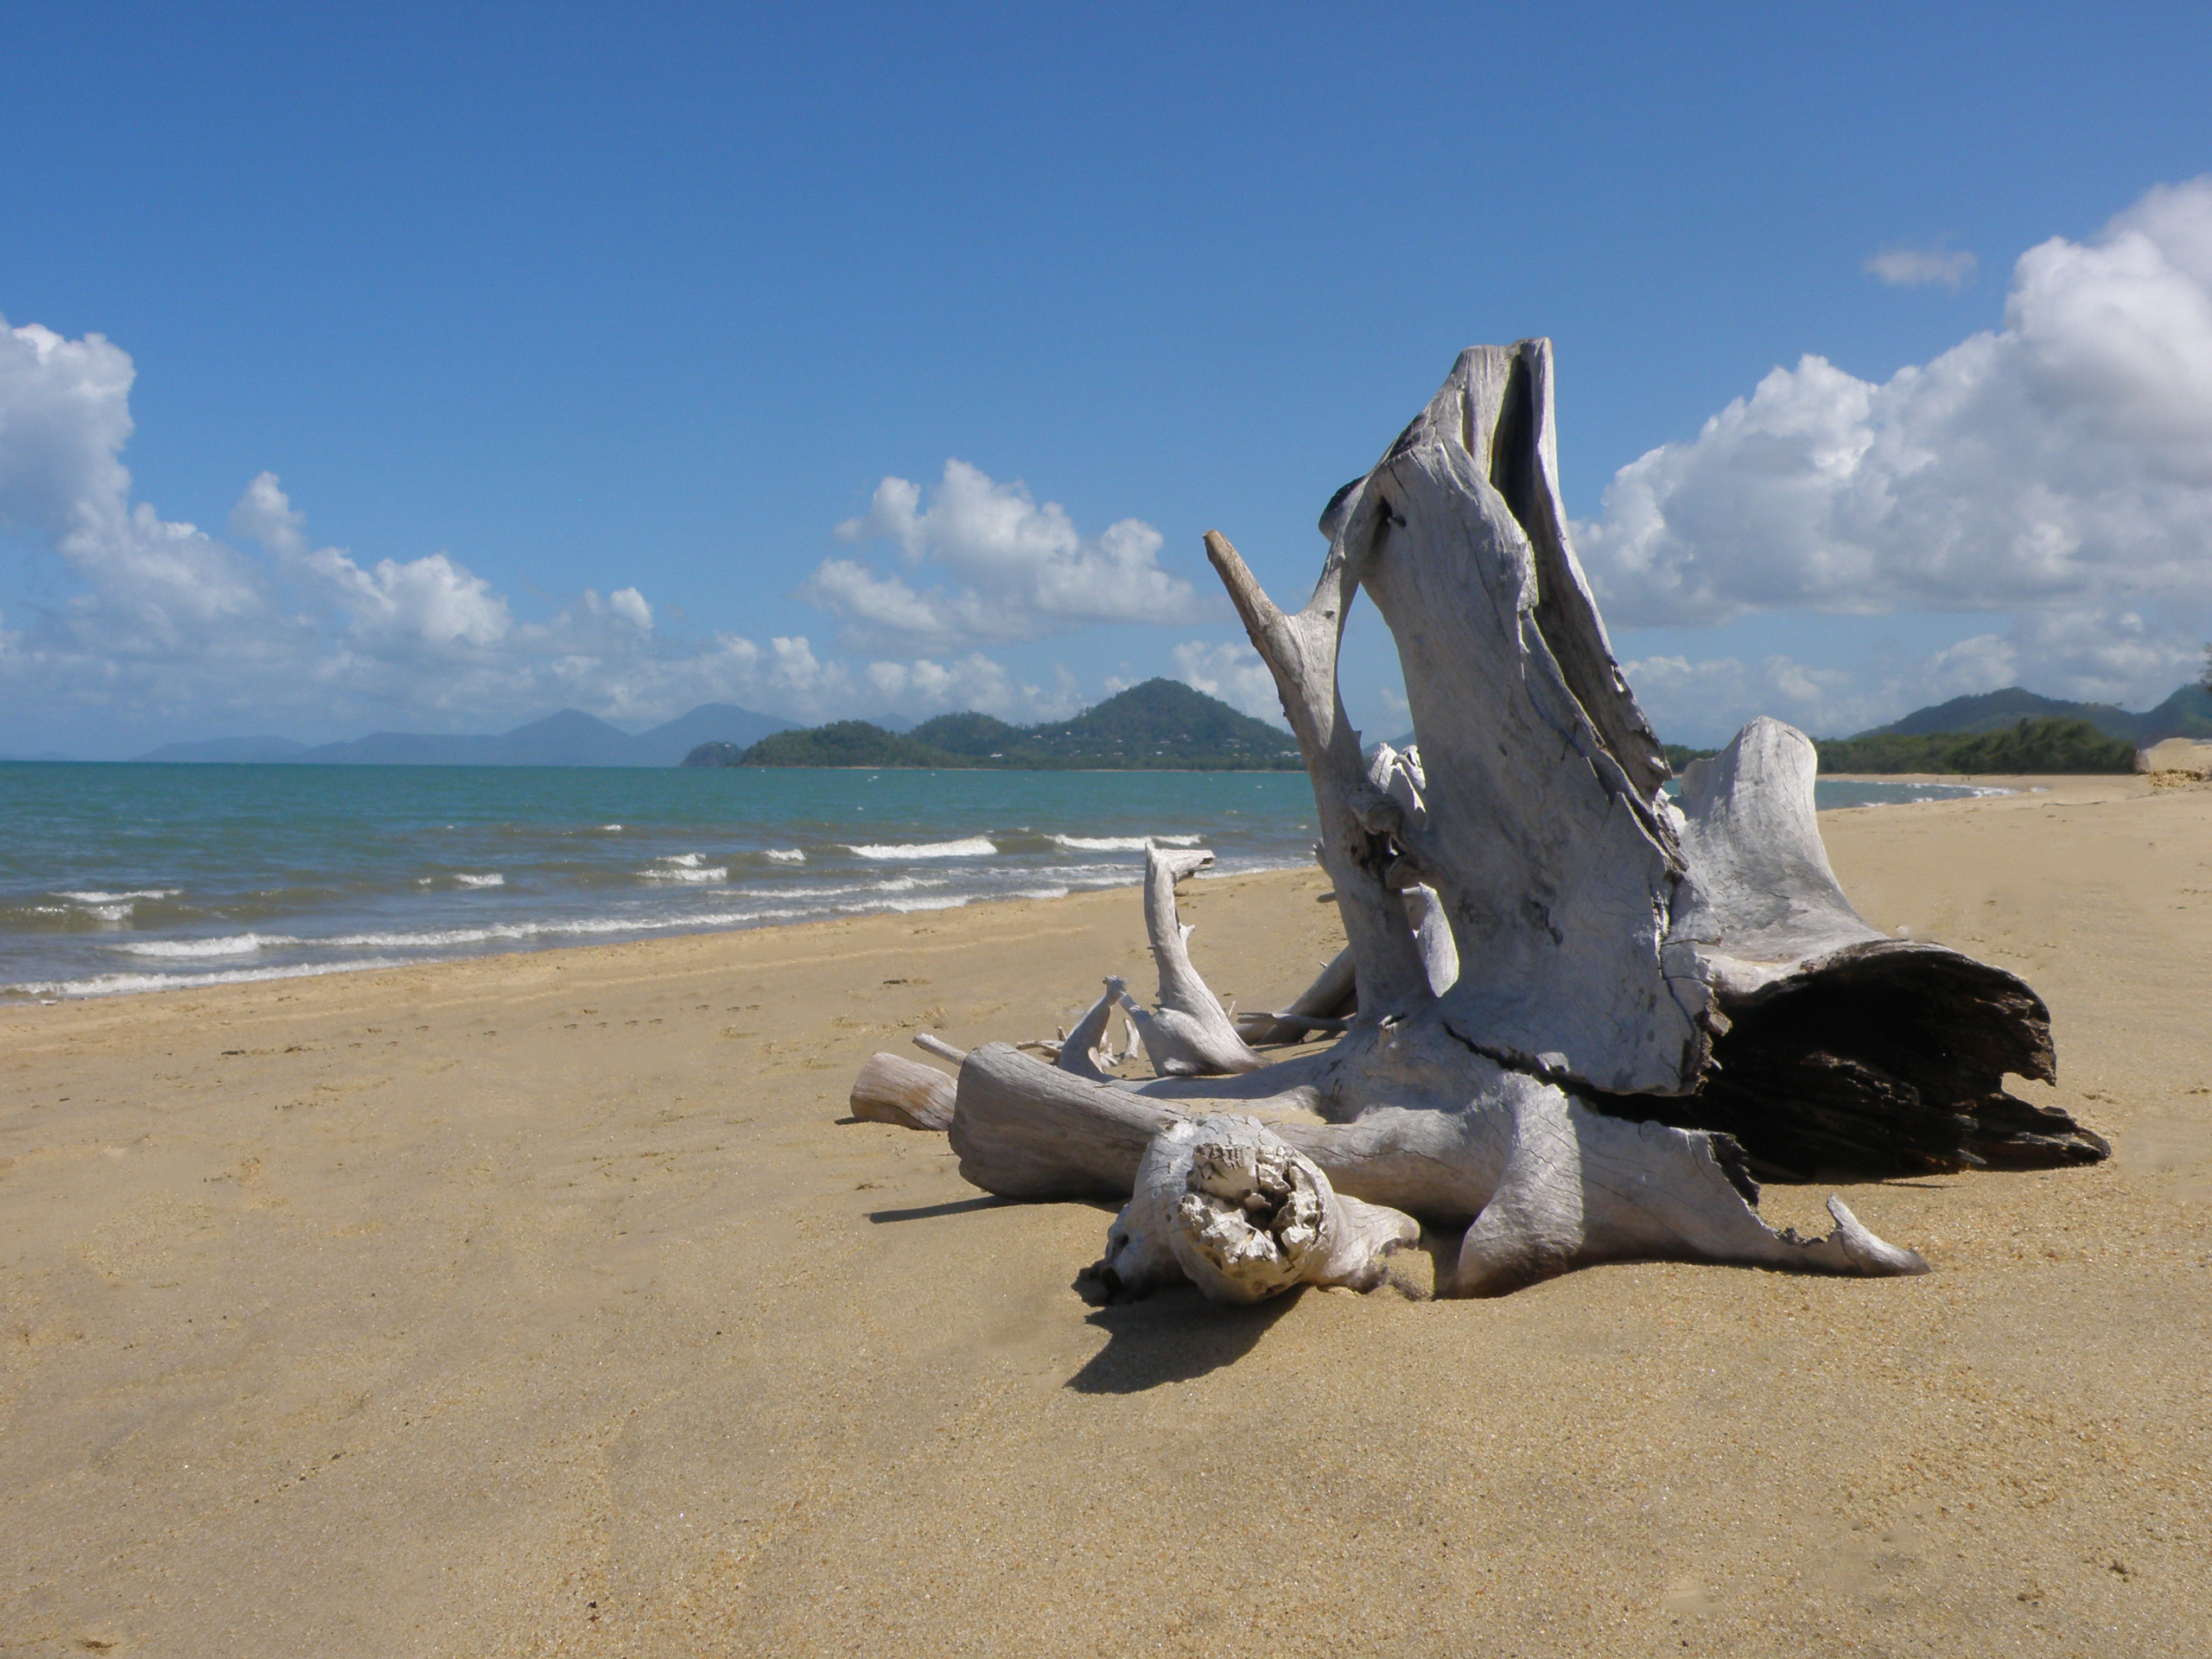 Driftwood in Paradise - some driftwood on a beach